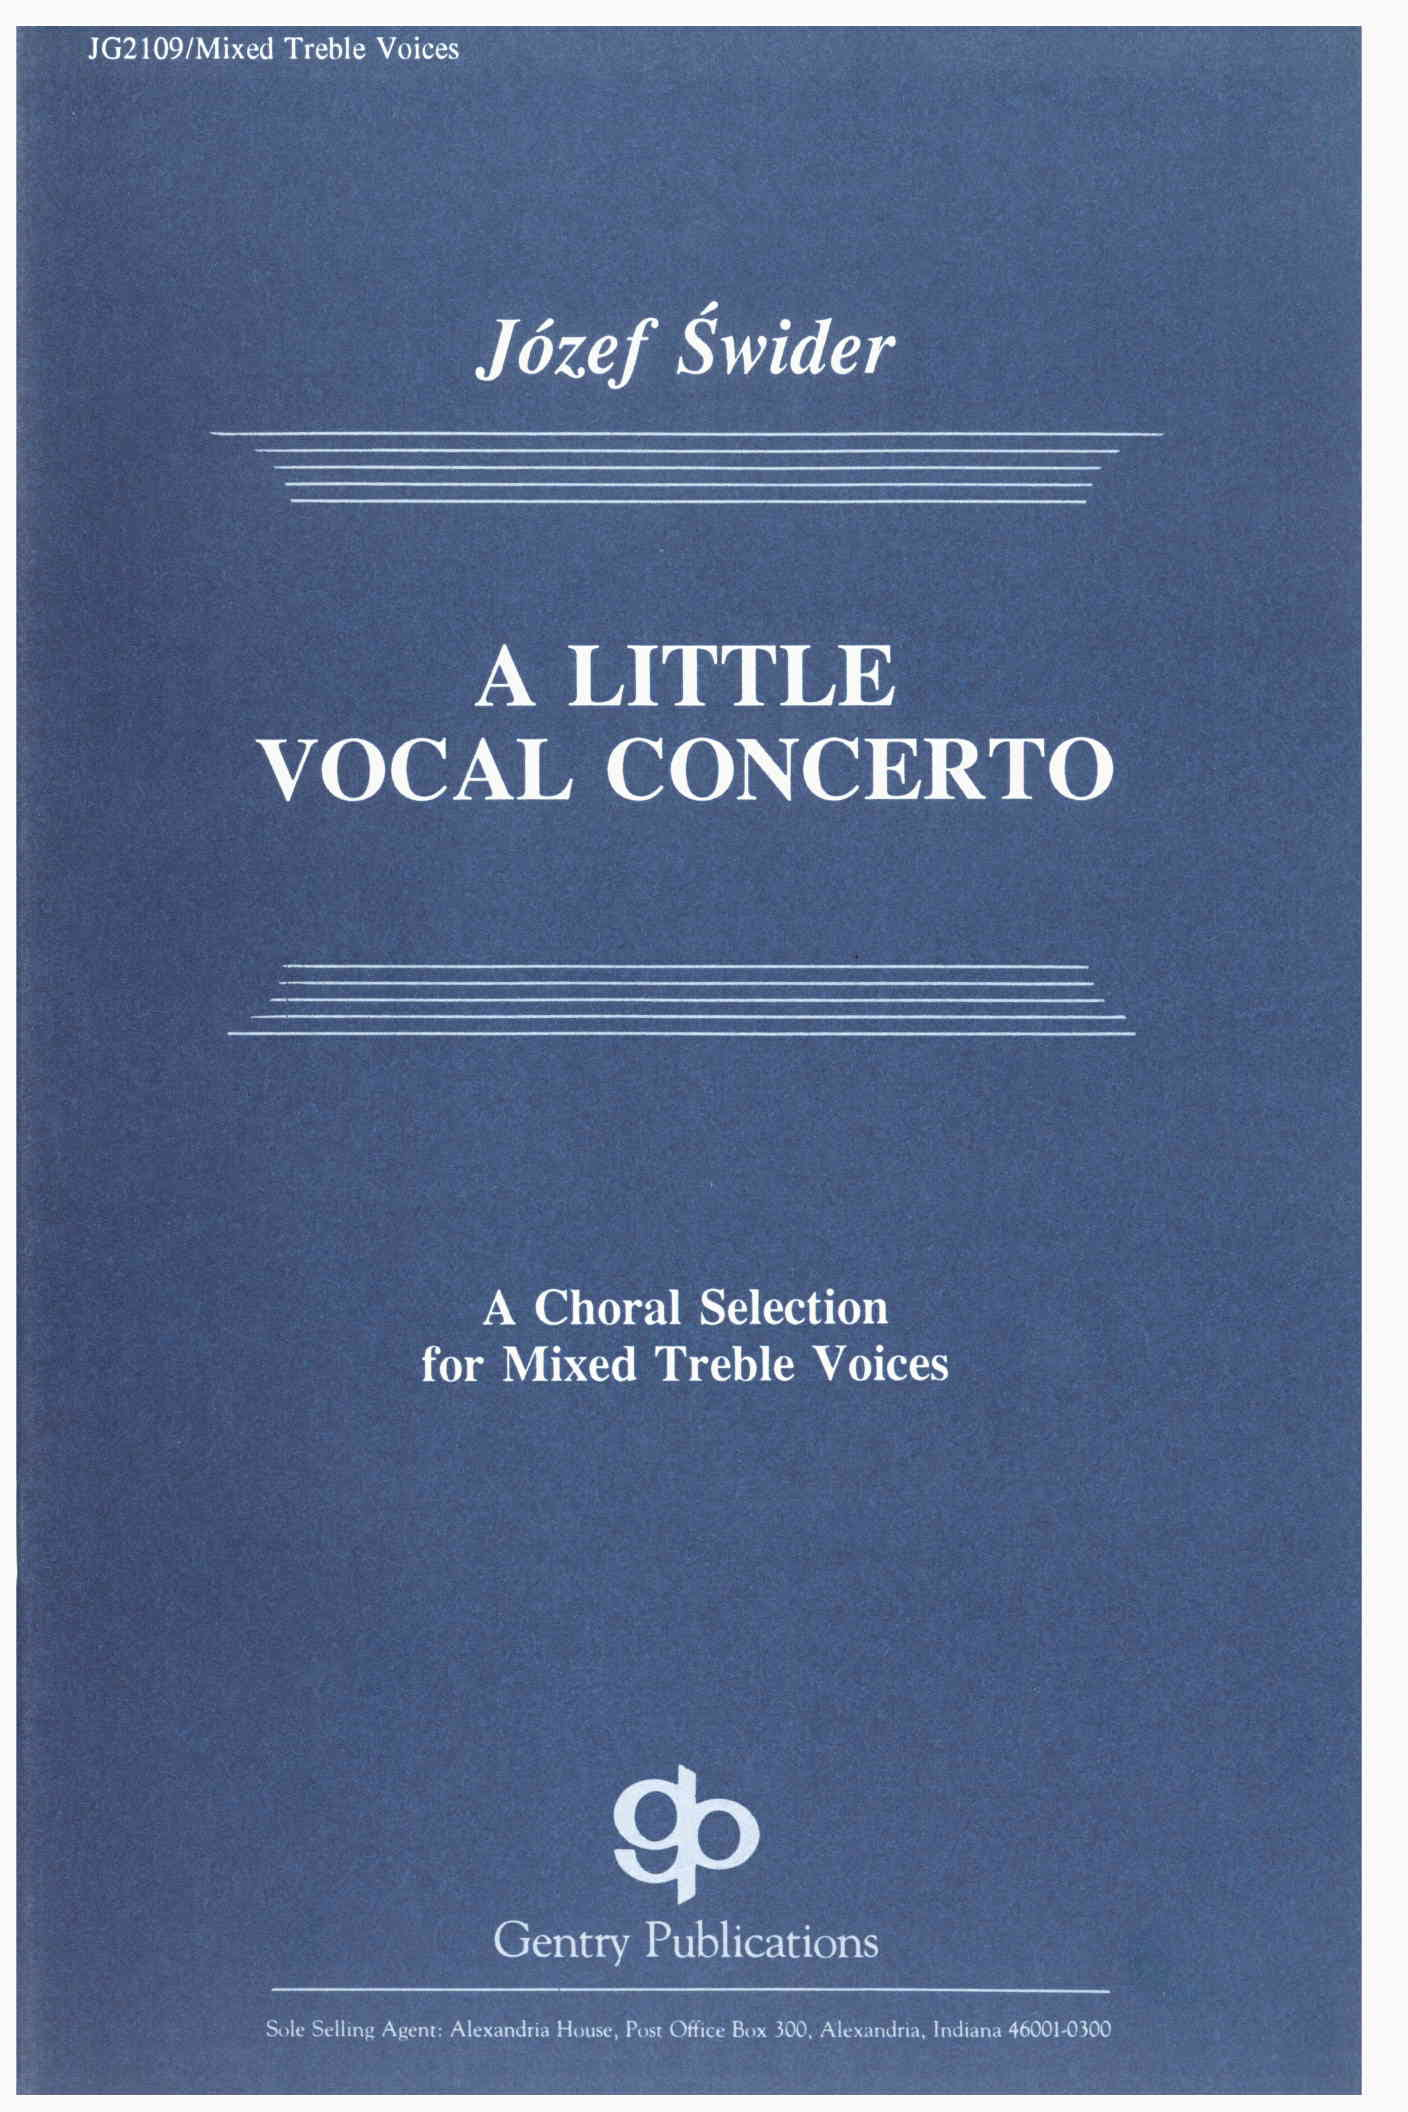 A Little Vocal Concerto